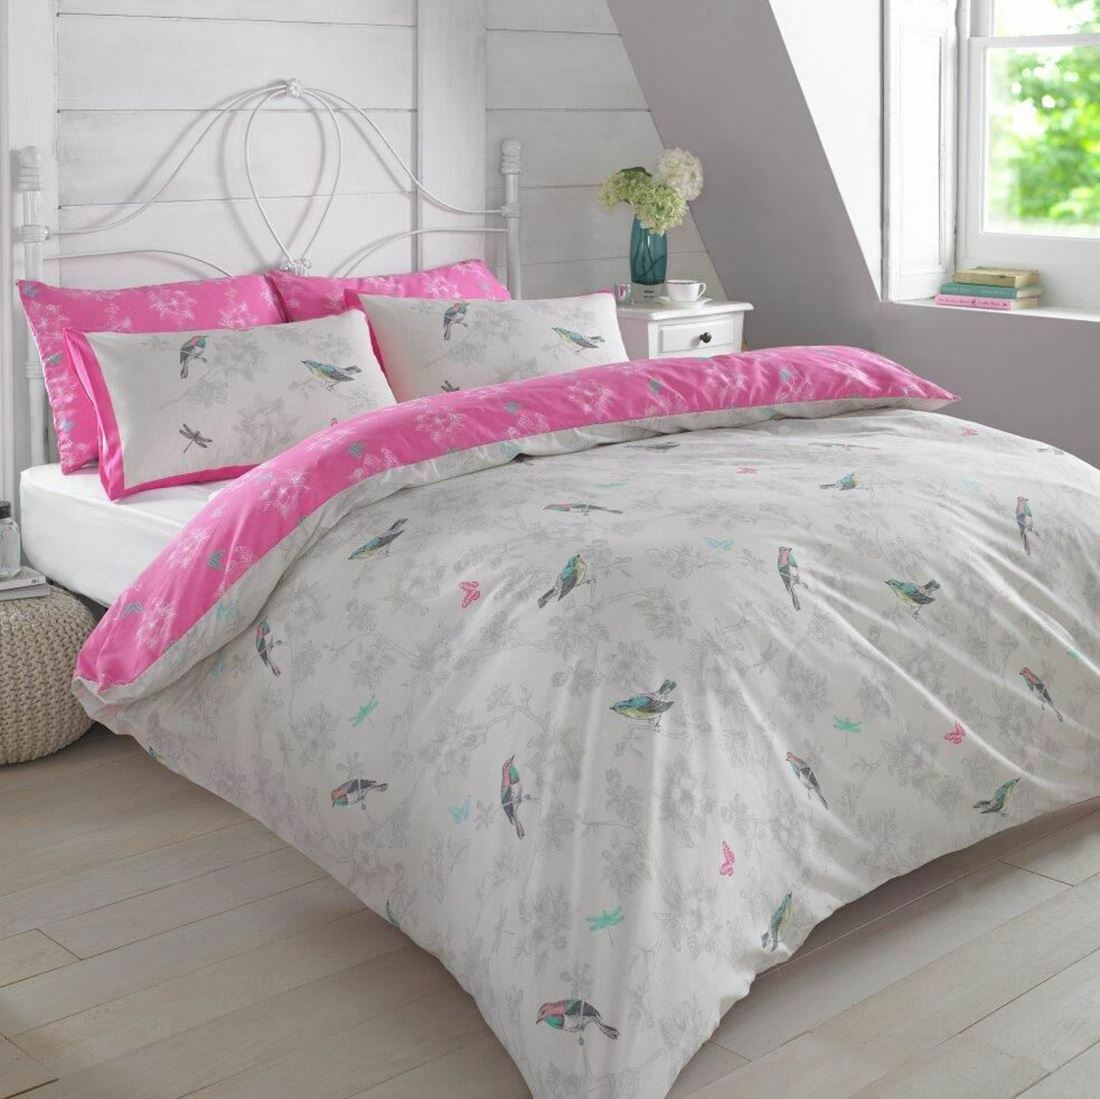 VINTAGE BIRDS PINK DOUBLE DUVET COVER SET & PILLOWCASES 2 DESIGNS IN 1 NEW